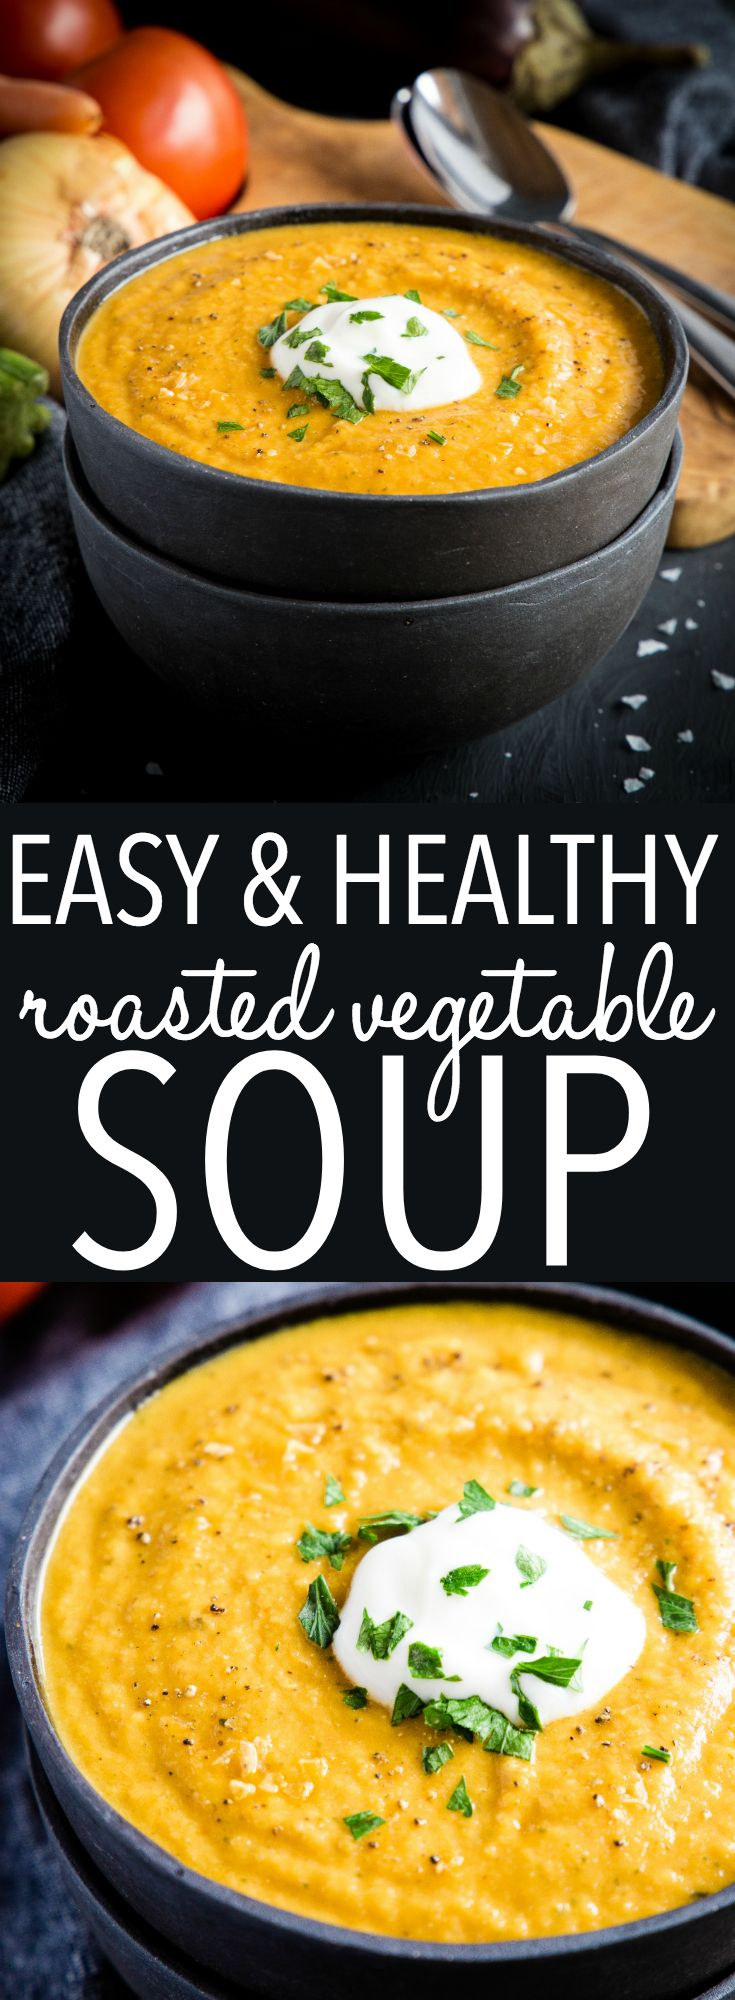 Easy Healthy Roasted Vegetable Soup The Busy Baker Recipe Easy Soup Recipes Vegetable Soup Recipes Healthy Soup Recipes